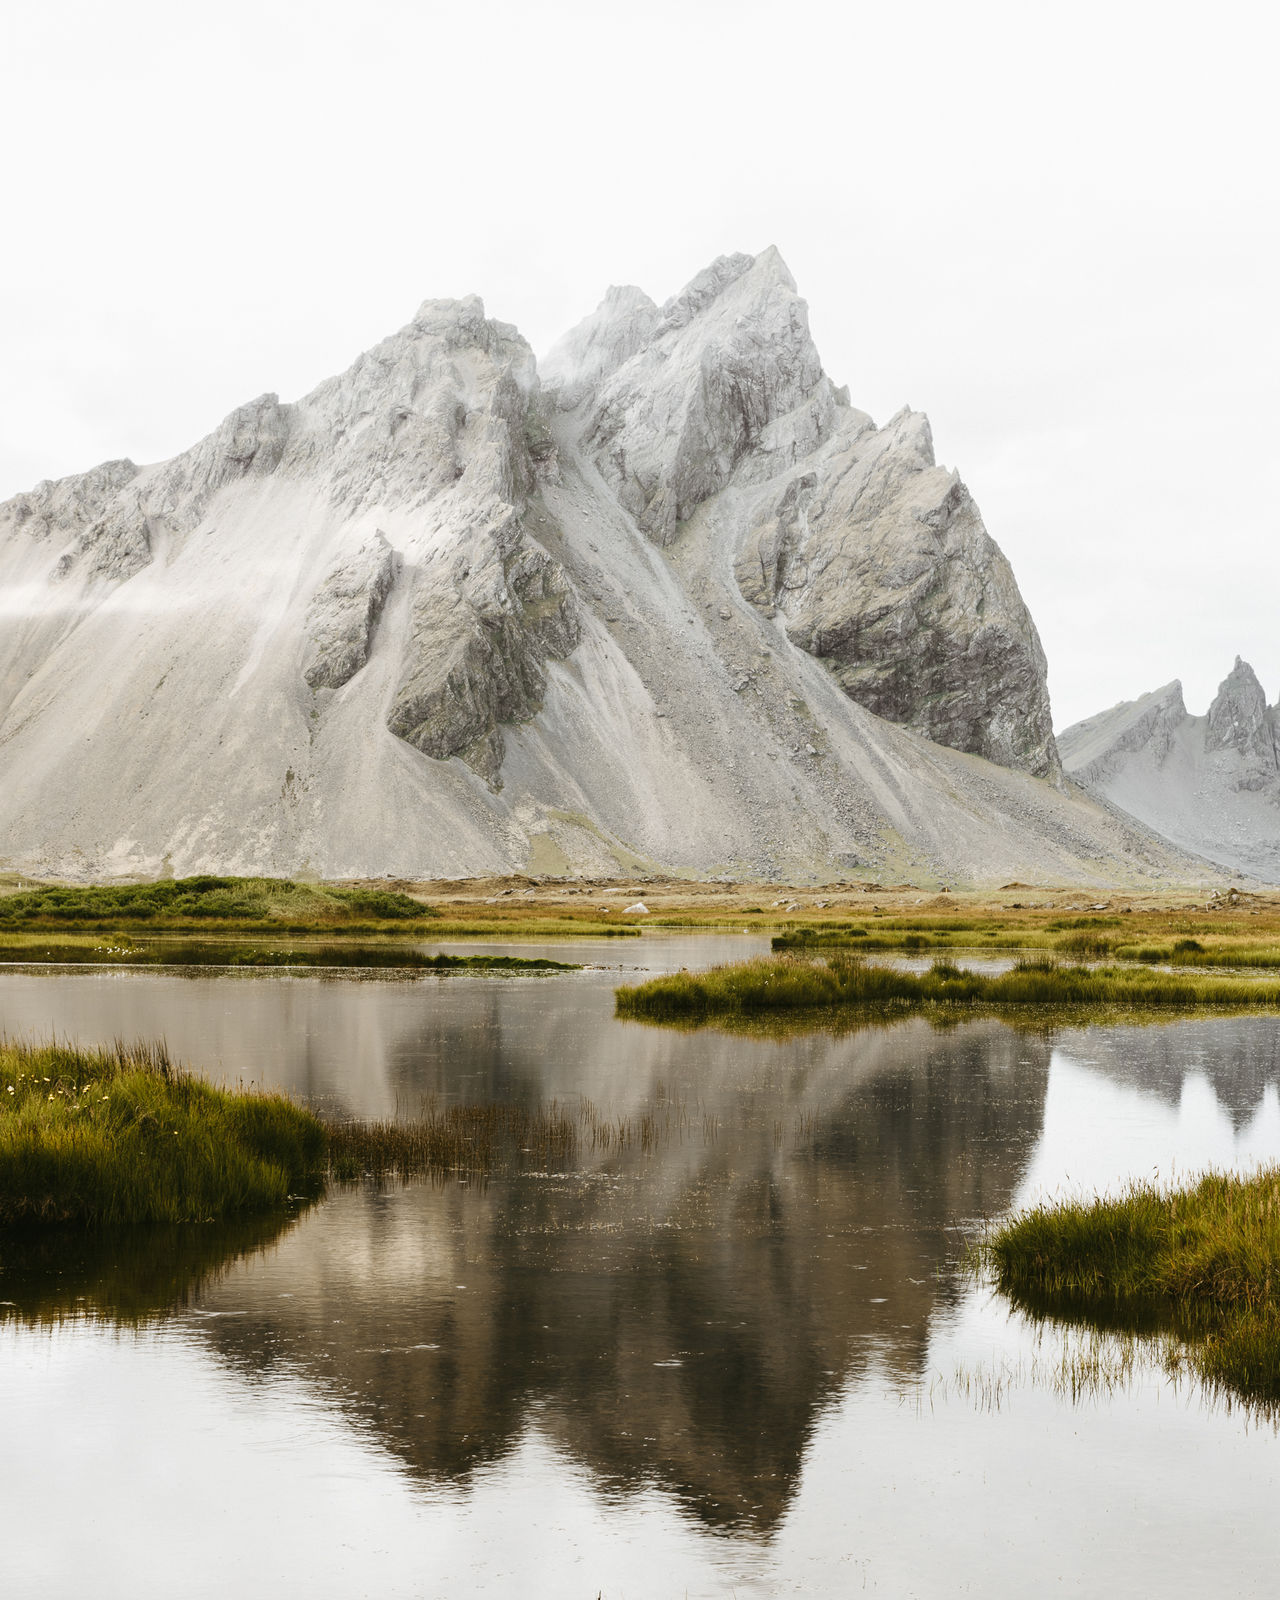 One of the fairest peaks of them all. Vesturhorn, Iceland Showcase August Iceland Mountains Reflection Landscape Scenics Eyeemphoto